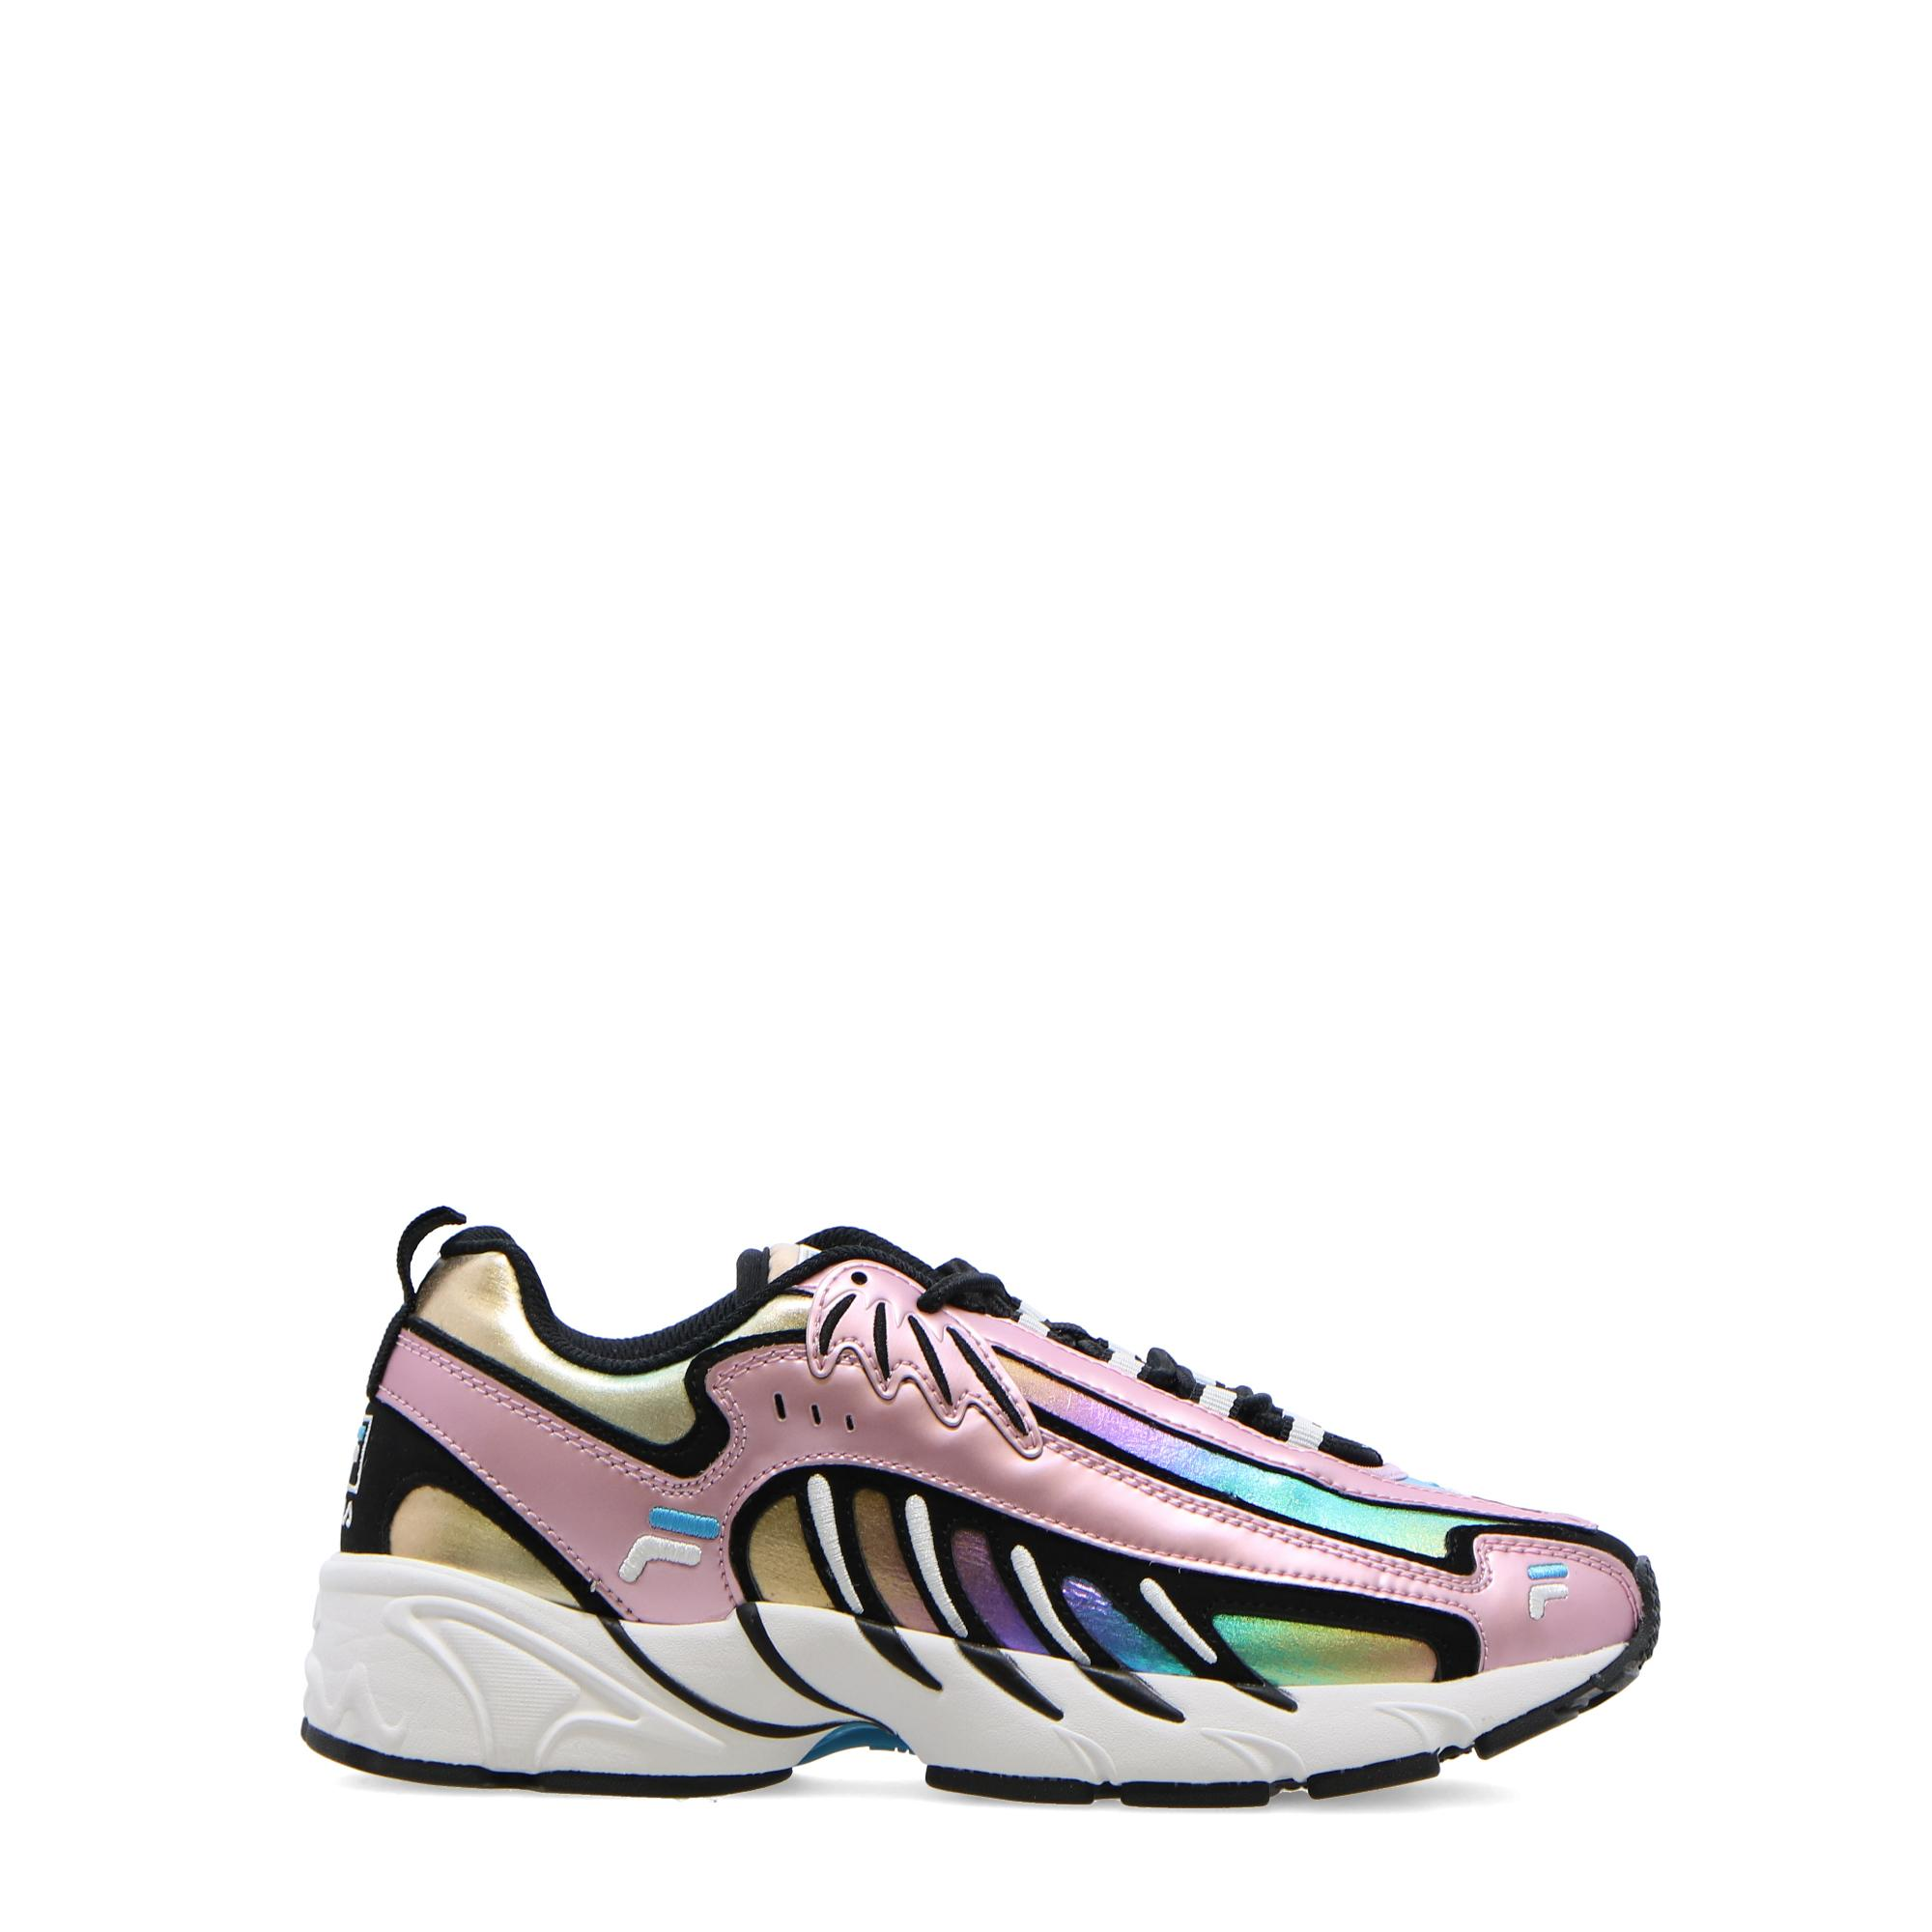 Fila Adl99 F Low Wmn Multi iridescent